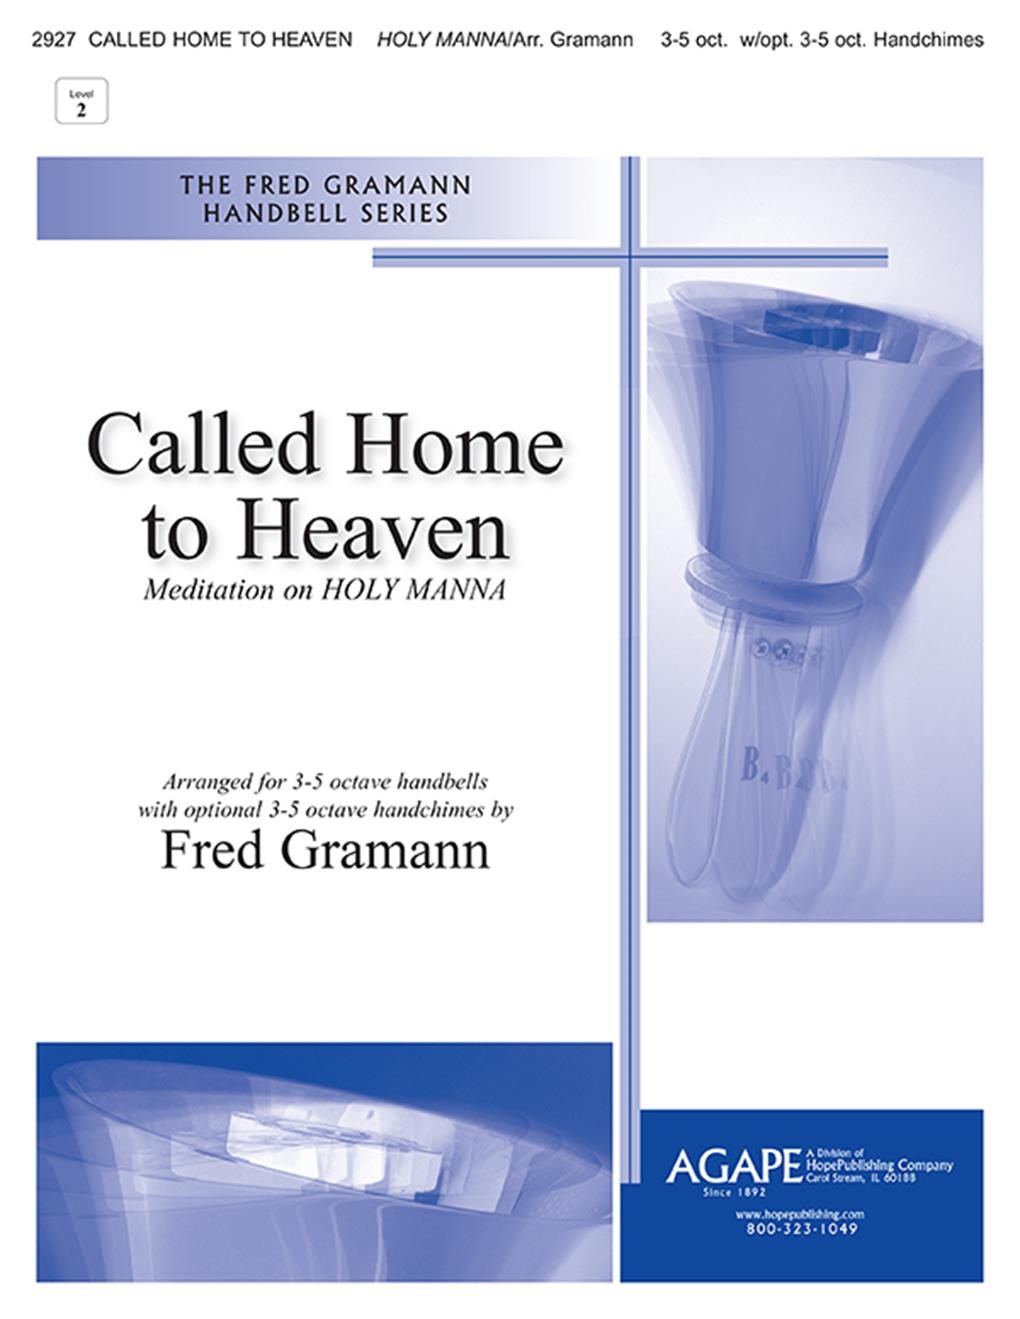 Called Home To Heaven - 3-5 Oct. Cover Image